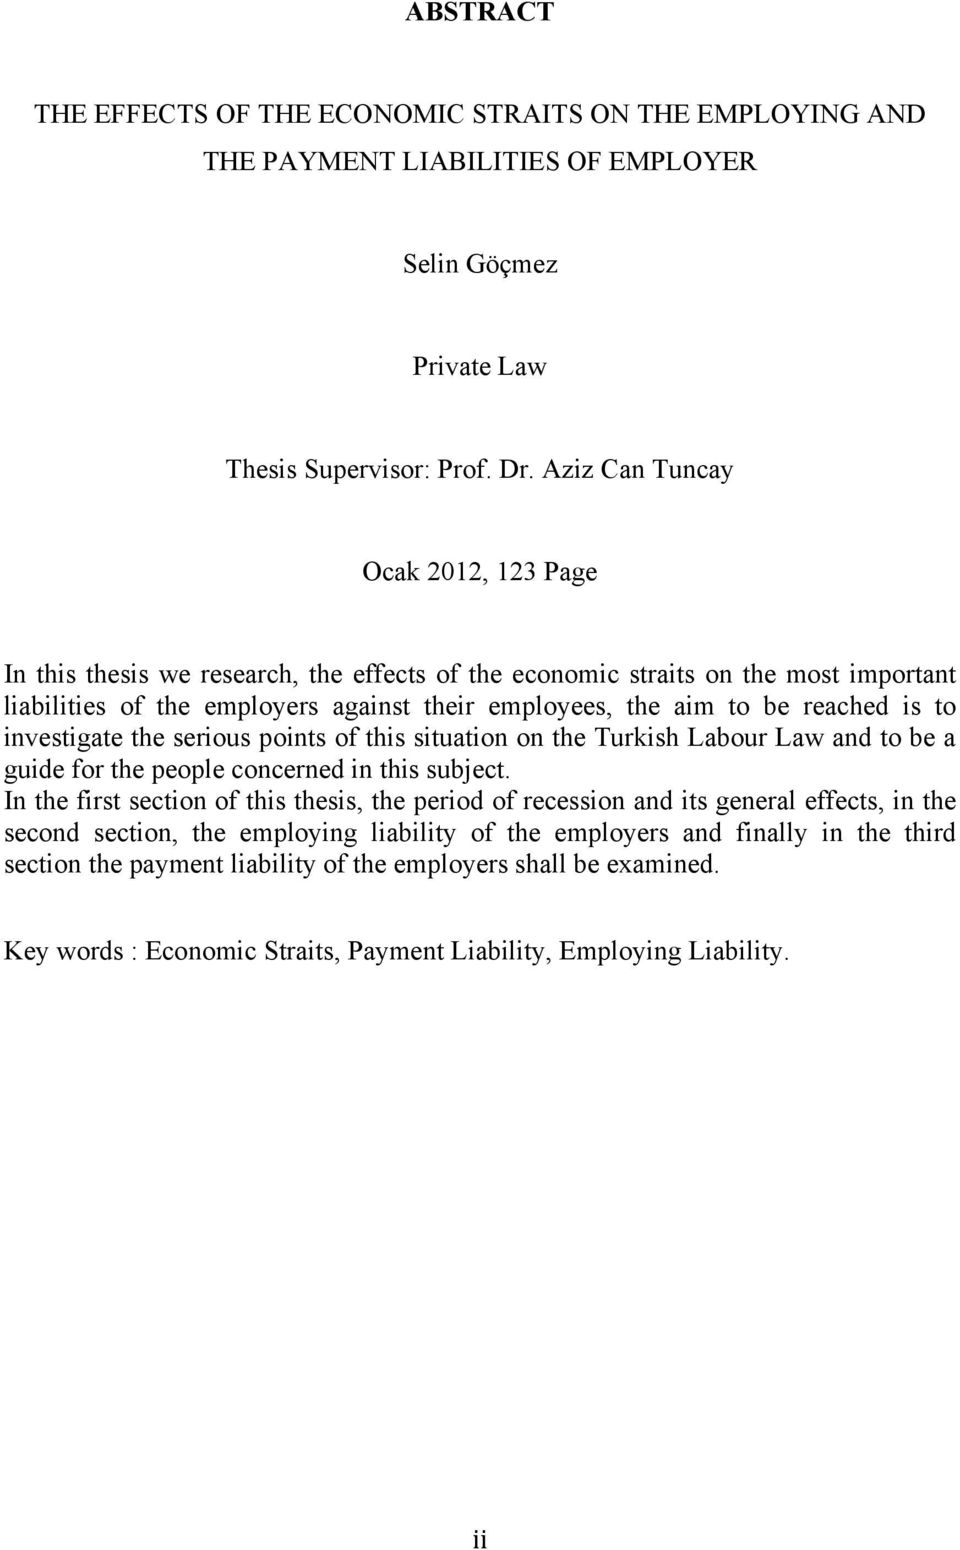 is to investigate the serious points of this situation on the Turkish Labour Law and to be a guide for the people concerned in this subject.